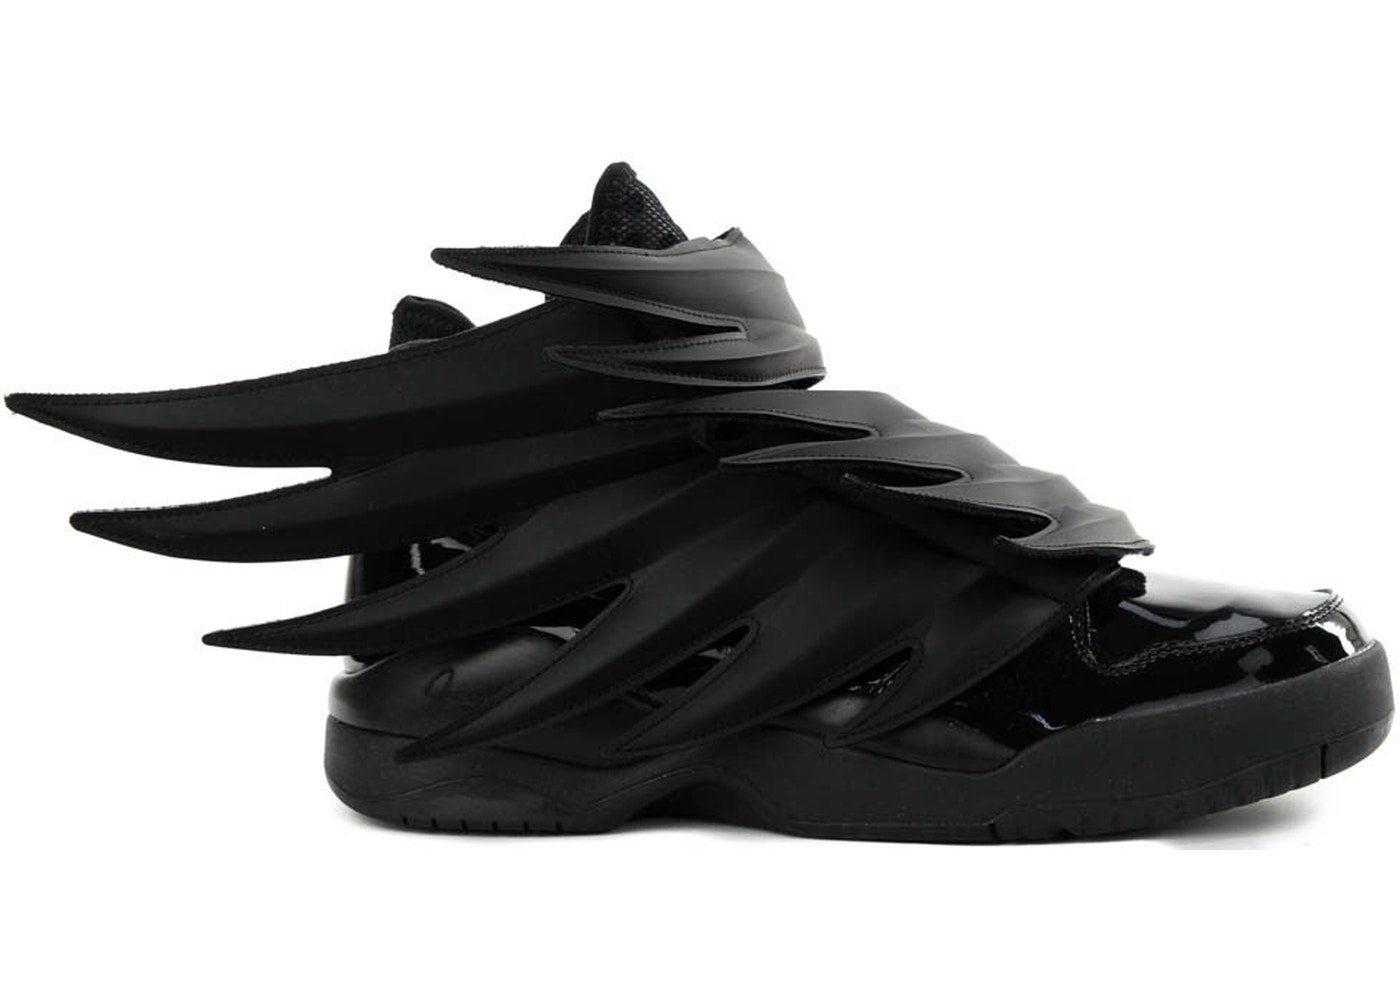 reputable site d35b4 f7a01 adidas Jeremy Scott Wings 3.0 Dark Knight